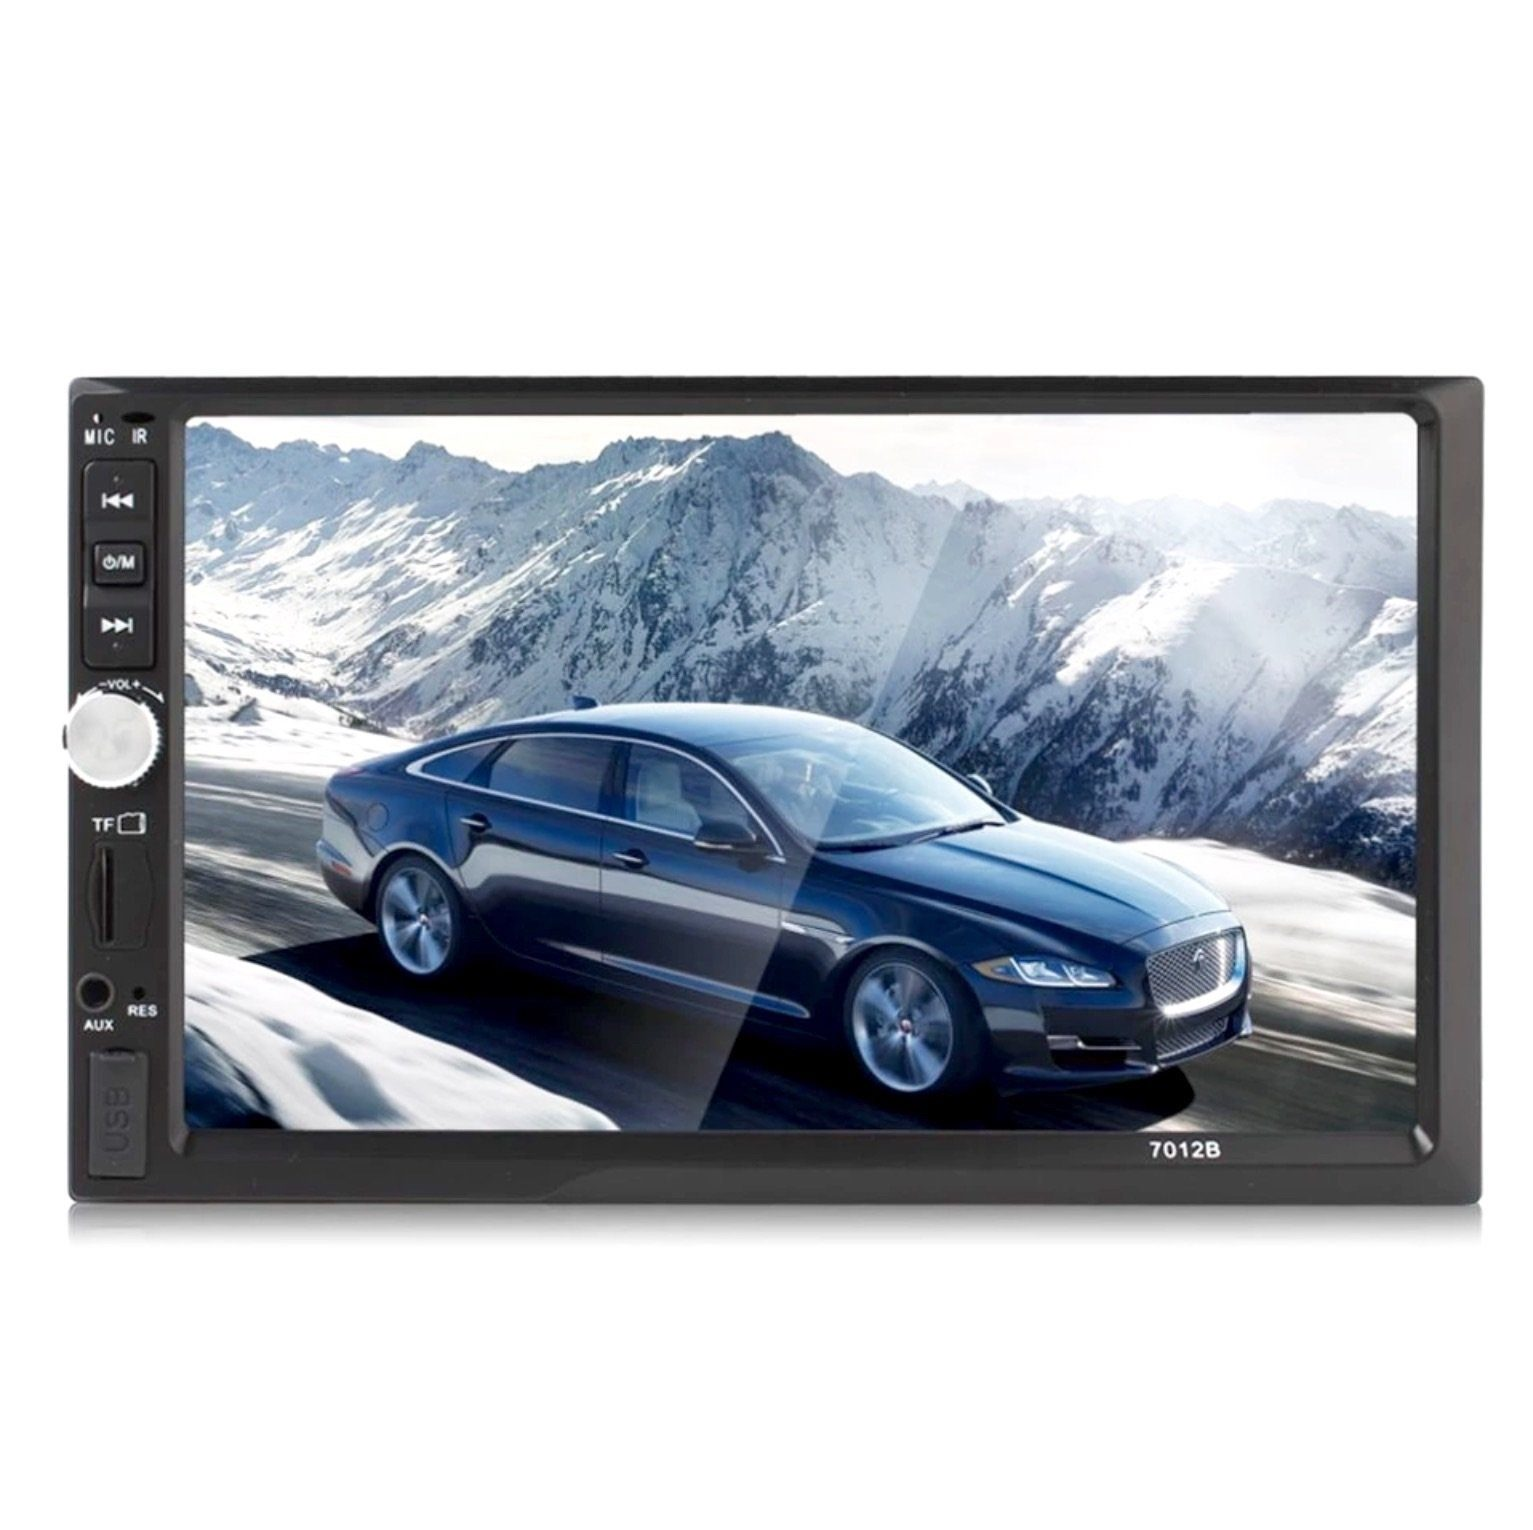 Car Stereo 2 DIN 7 inch Head Unit with Rear View Camera